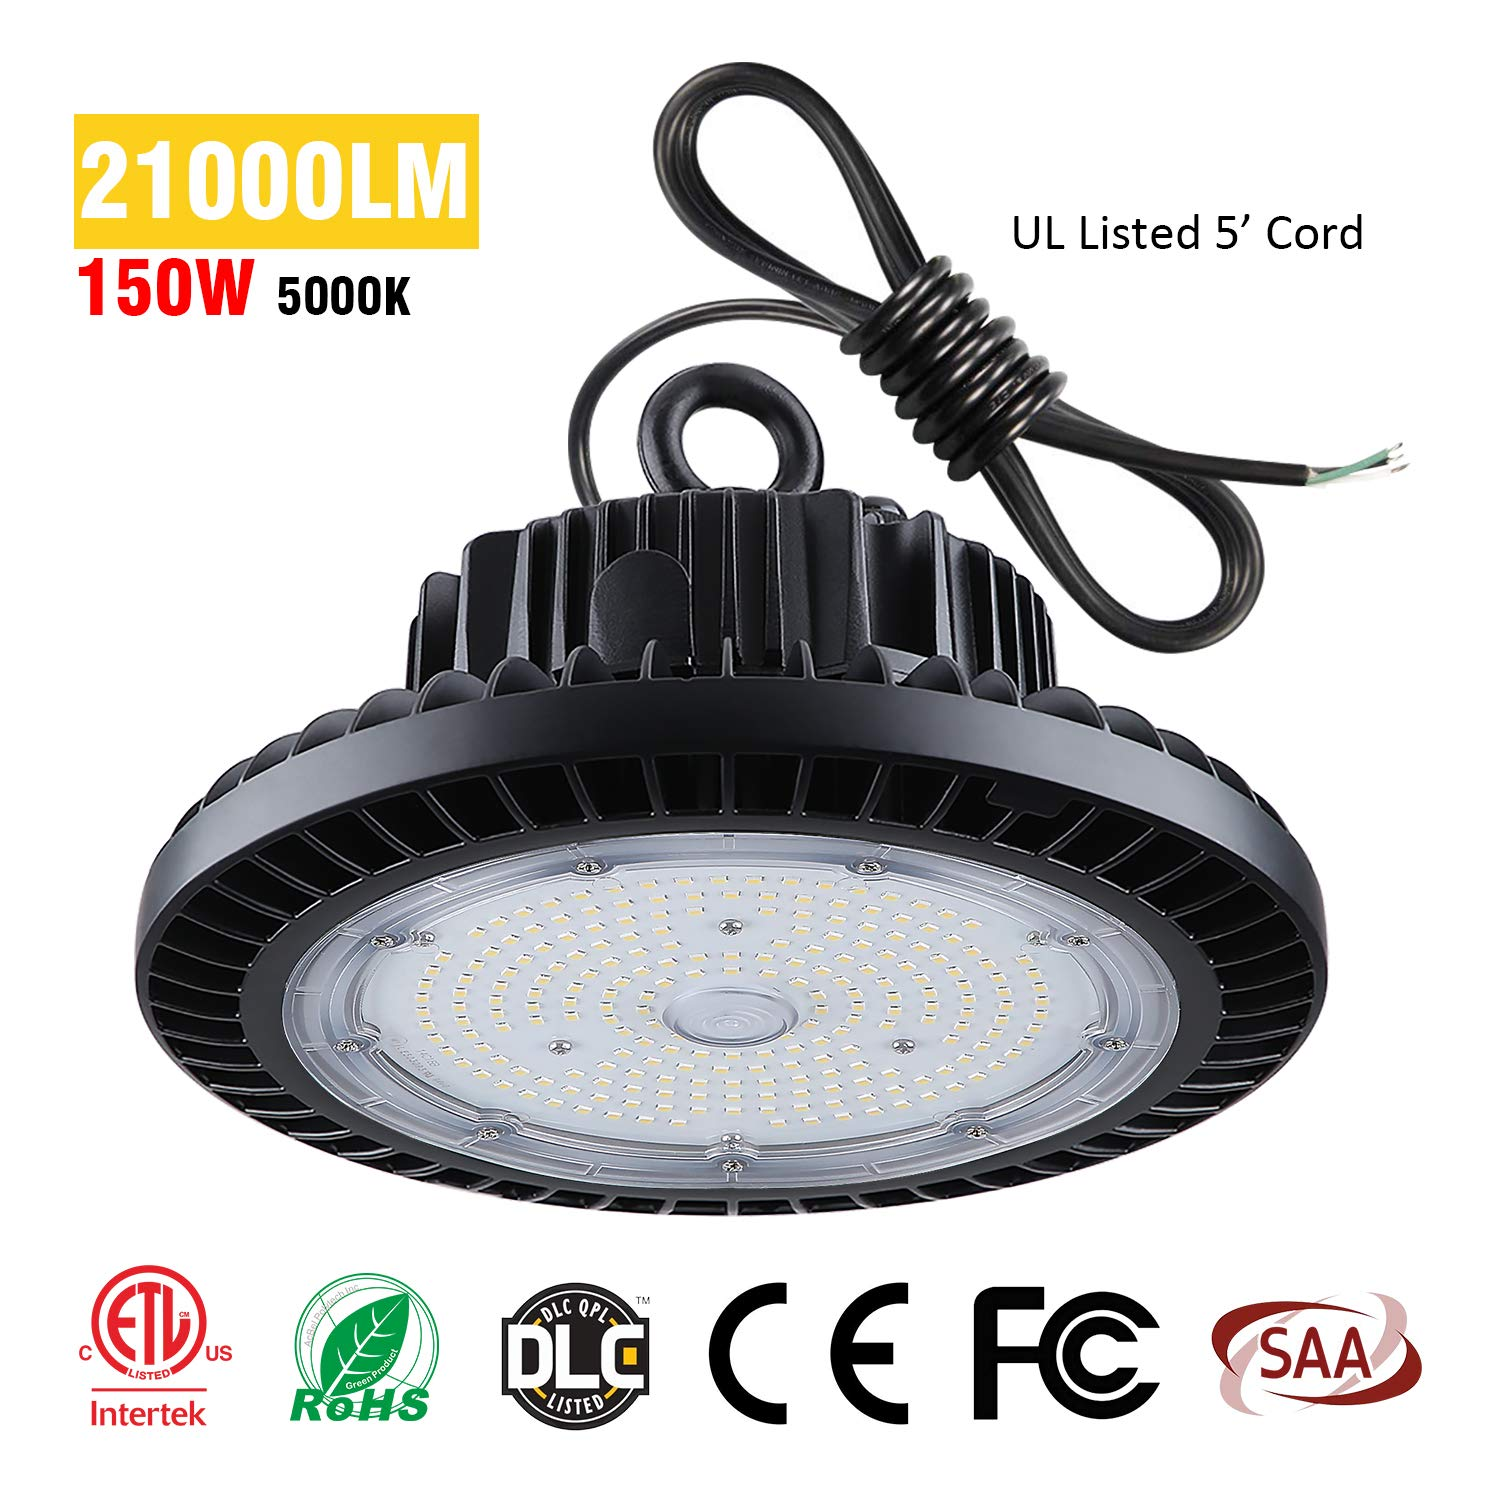 TREONYIA UFO LED High Bay Light 150W - 21000LM 5000K, ETL&DLC Listed (600W HID/HPS Equivalent), Super Bright LED Warehouse Lighting Lamp Fixture, IP65 Waterproof (With Safe Rope, UL Approved 5' Cable)